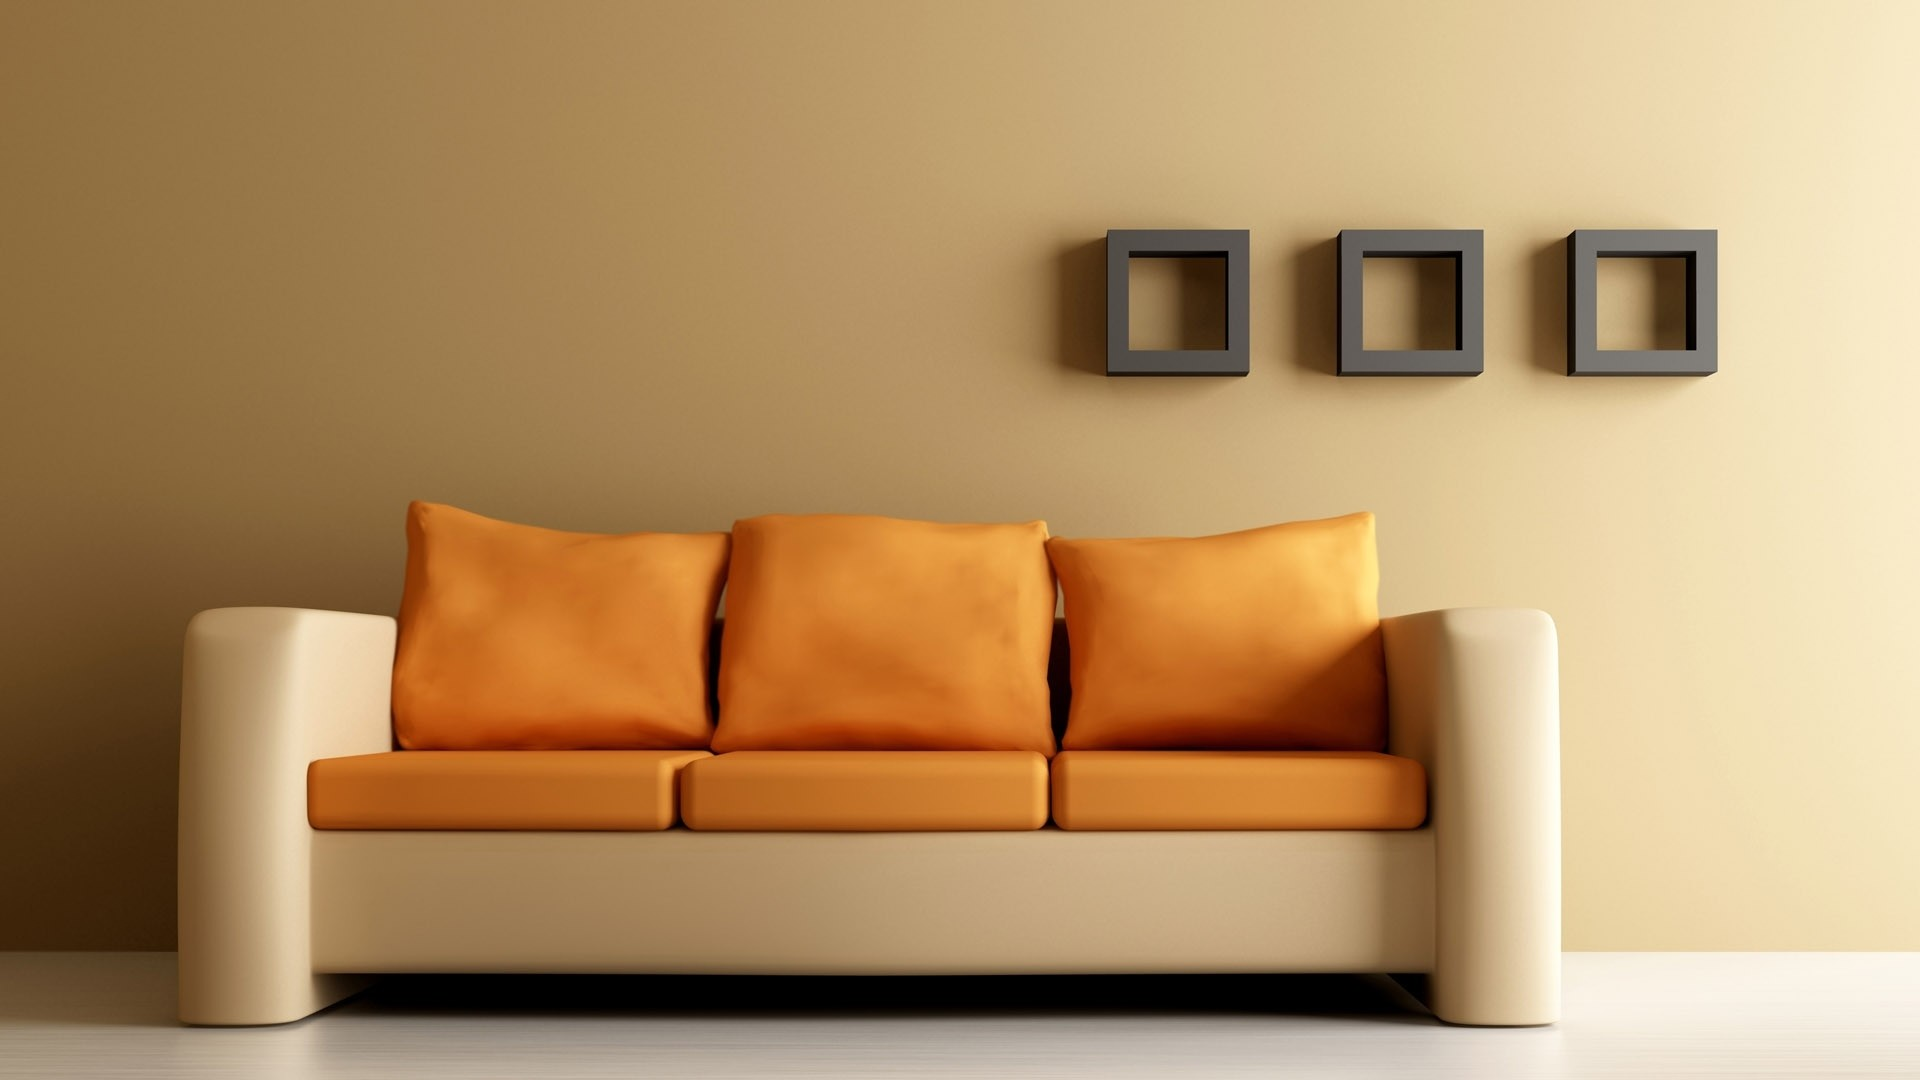 1920x1080 Preview wallpaper sofa, shelves, walls, design